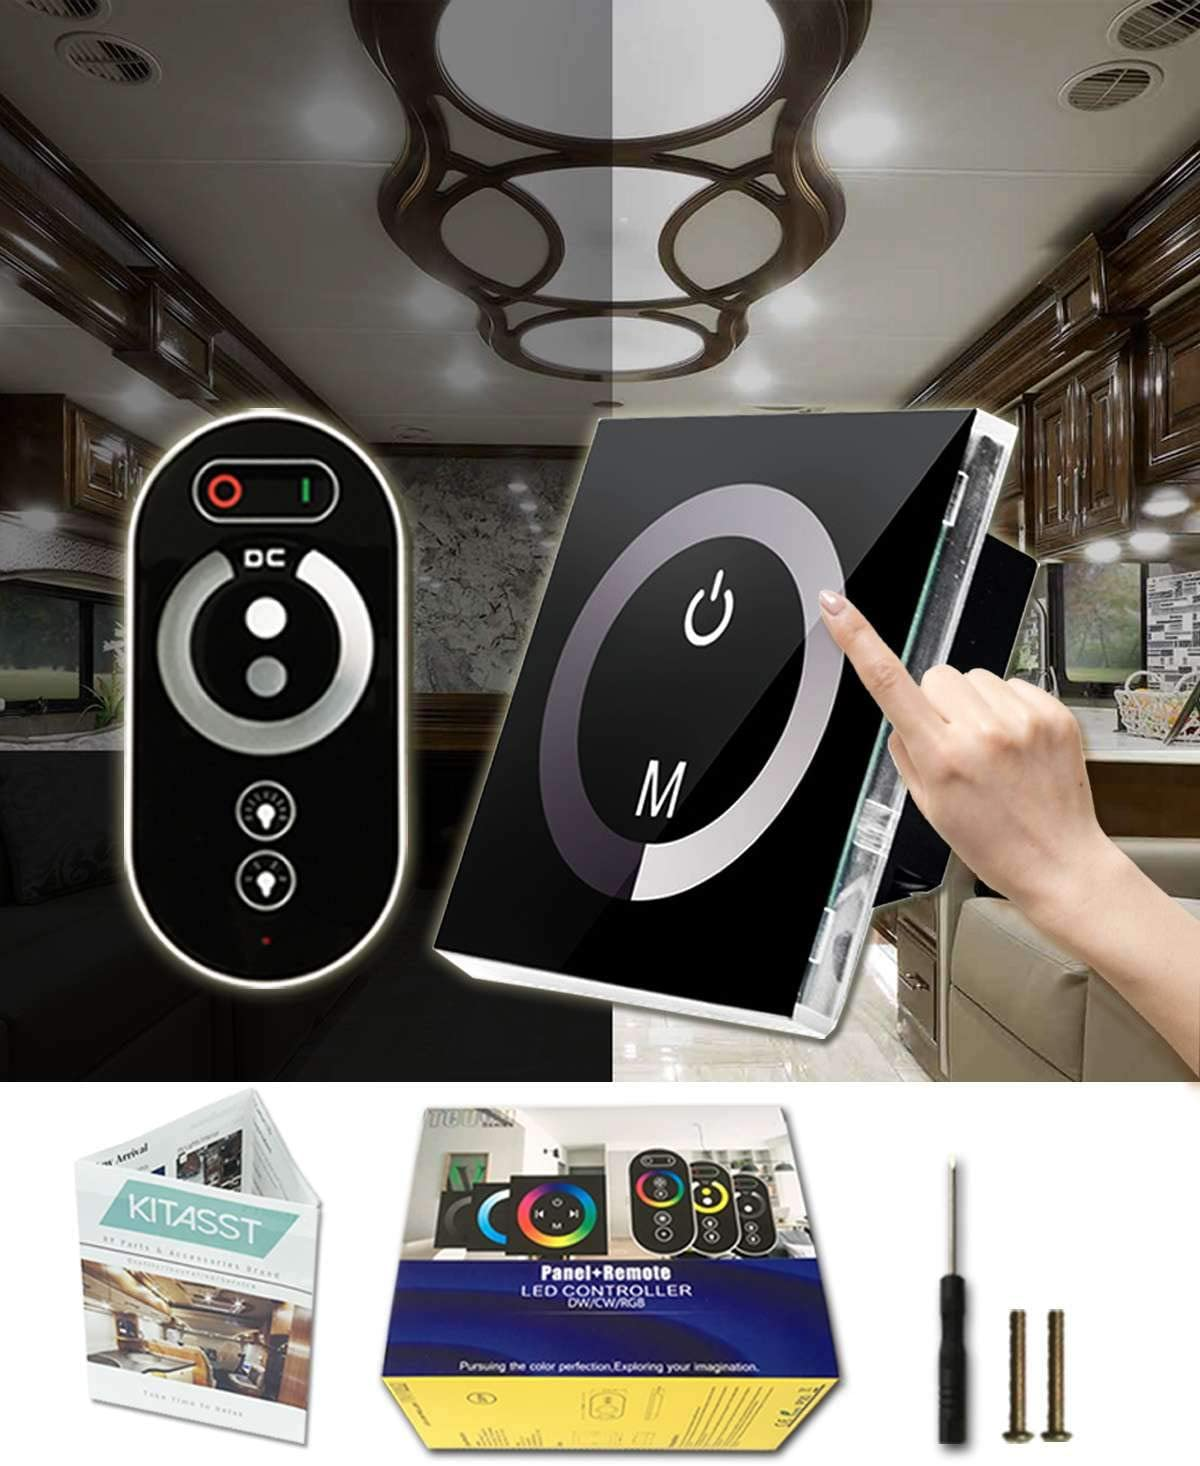 KITASST Touch LED Dimmer Max 78% OFF Switch 12V for Remote with Control 24V free